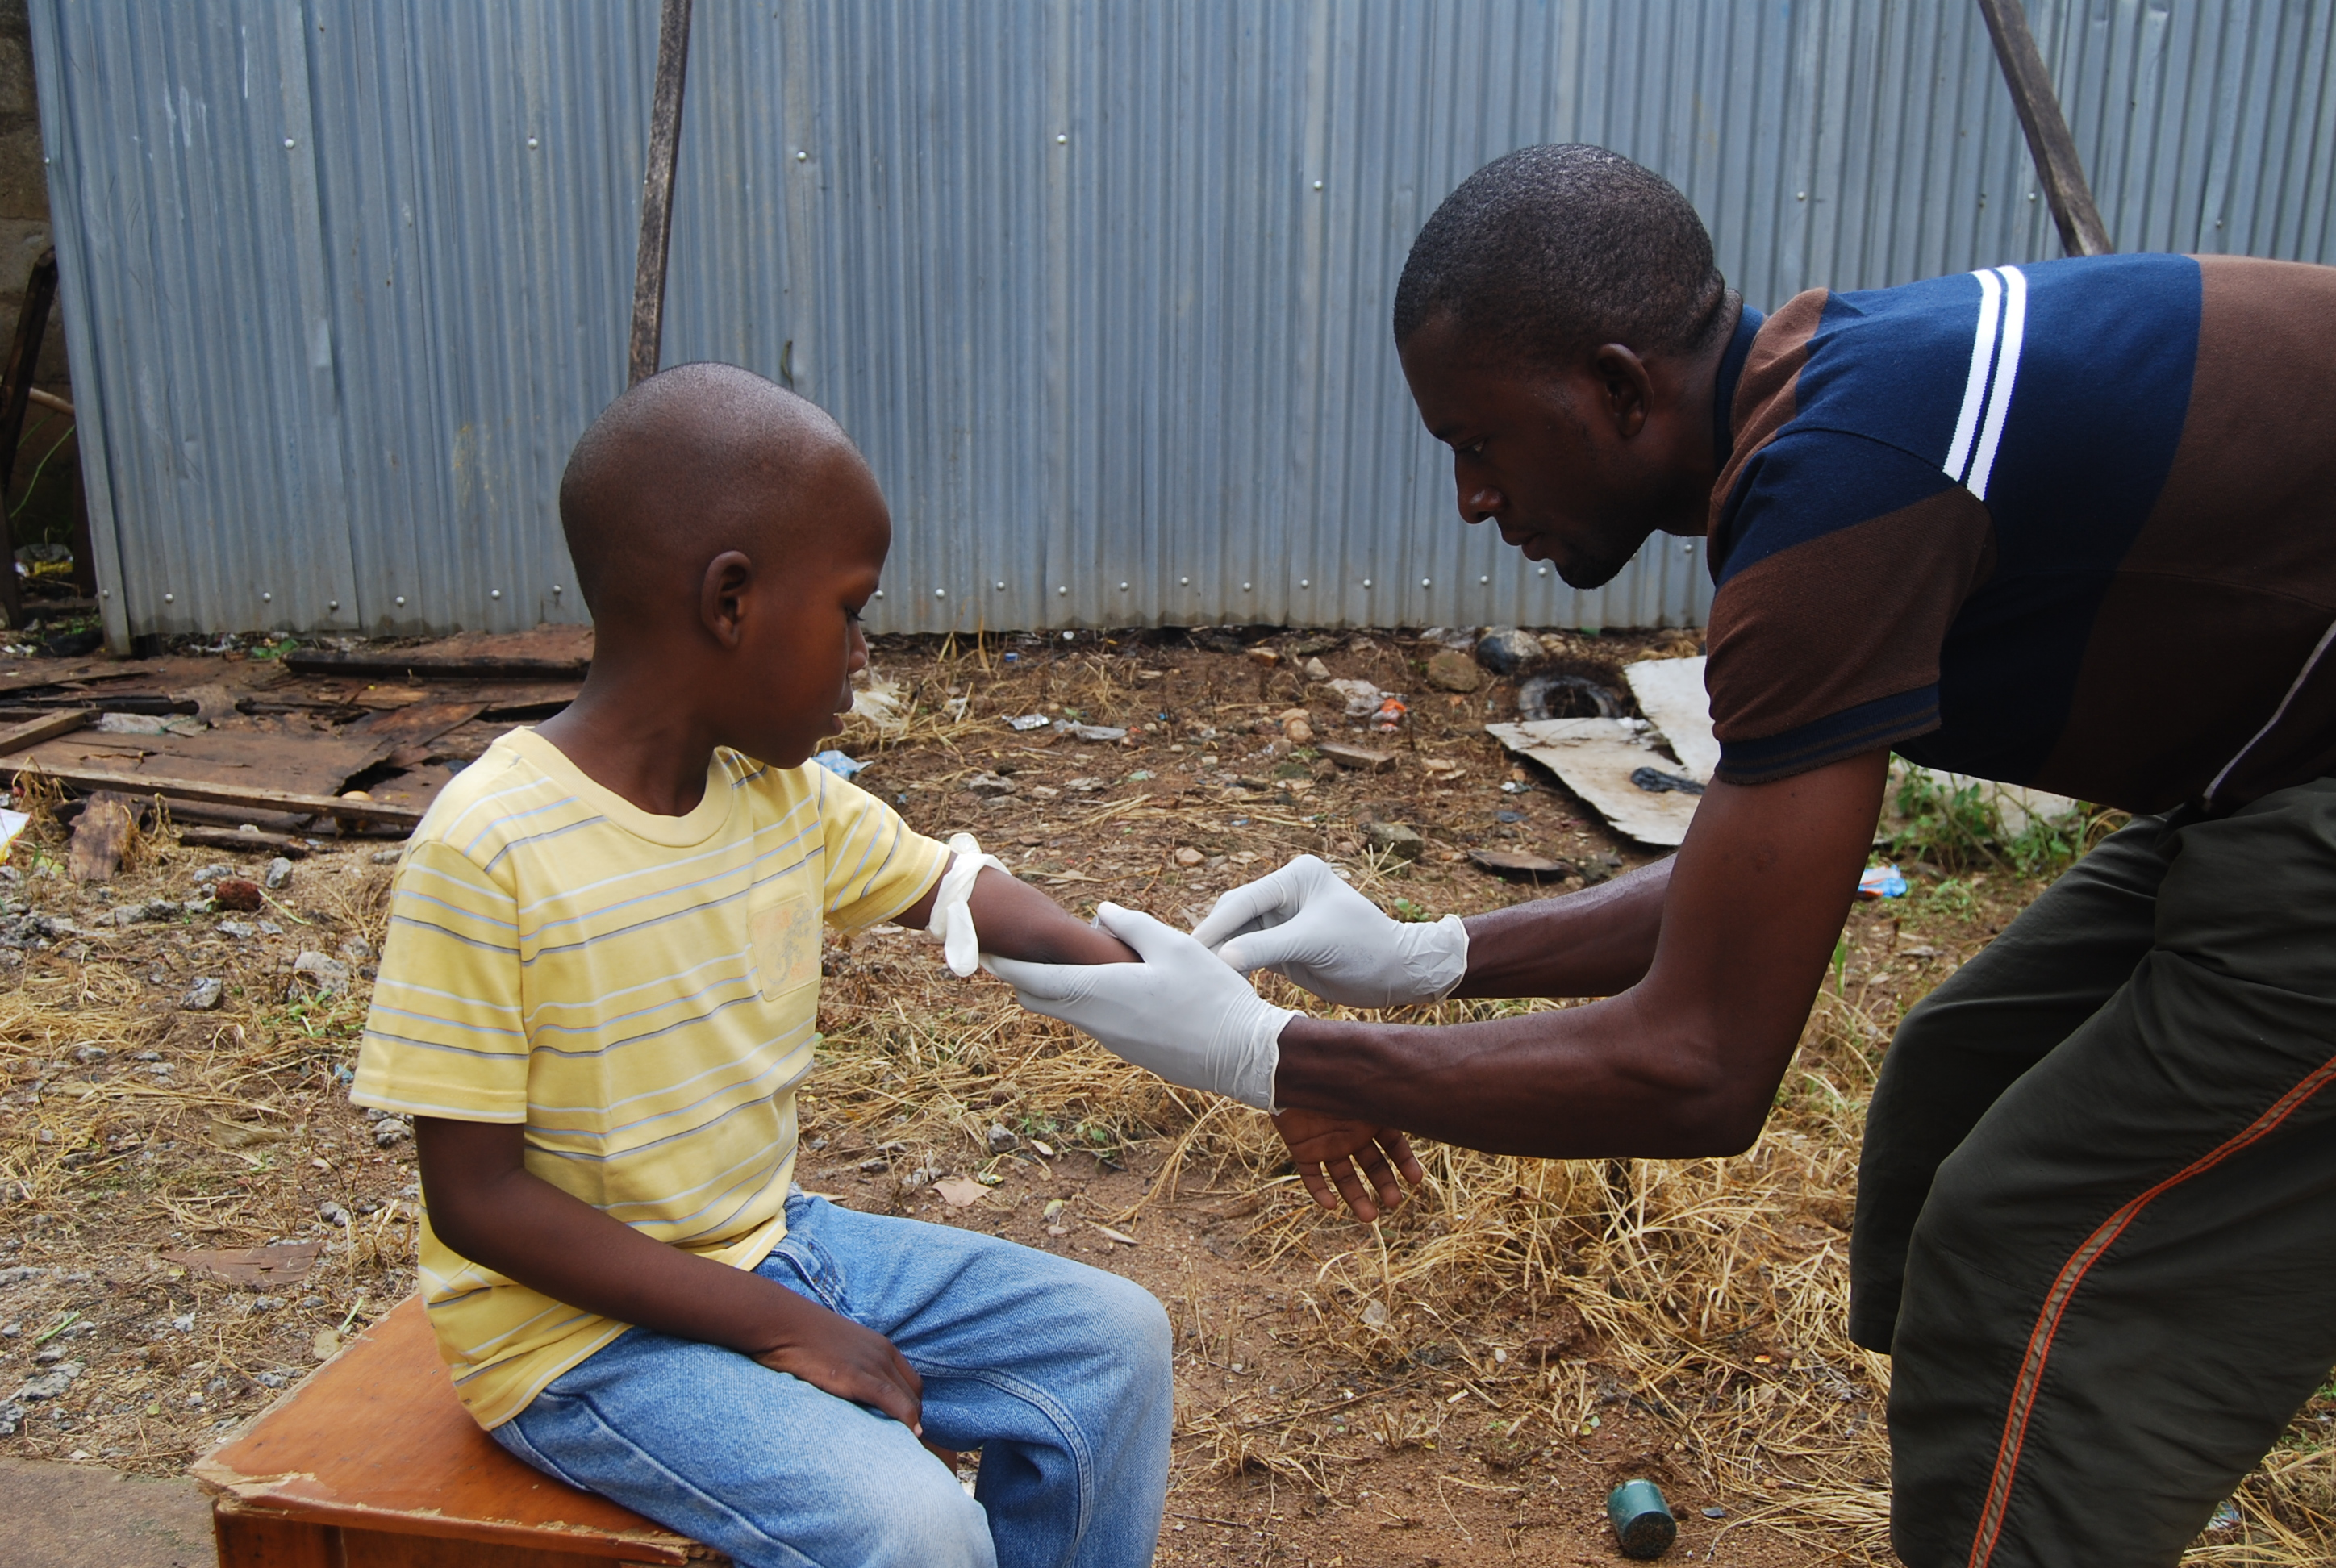 Uganda Immunization Training Program (UITP)